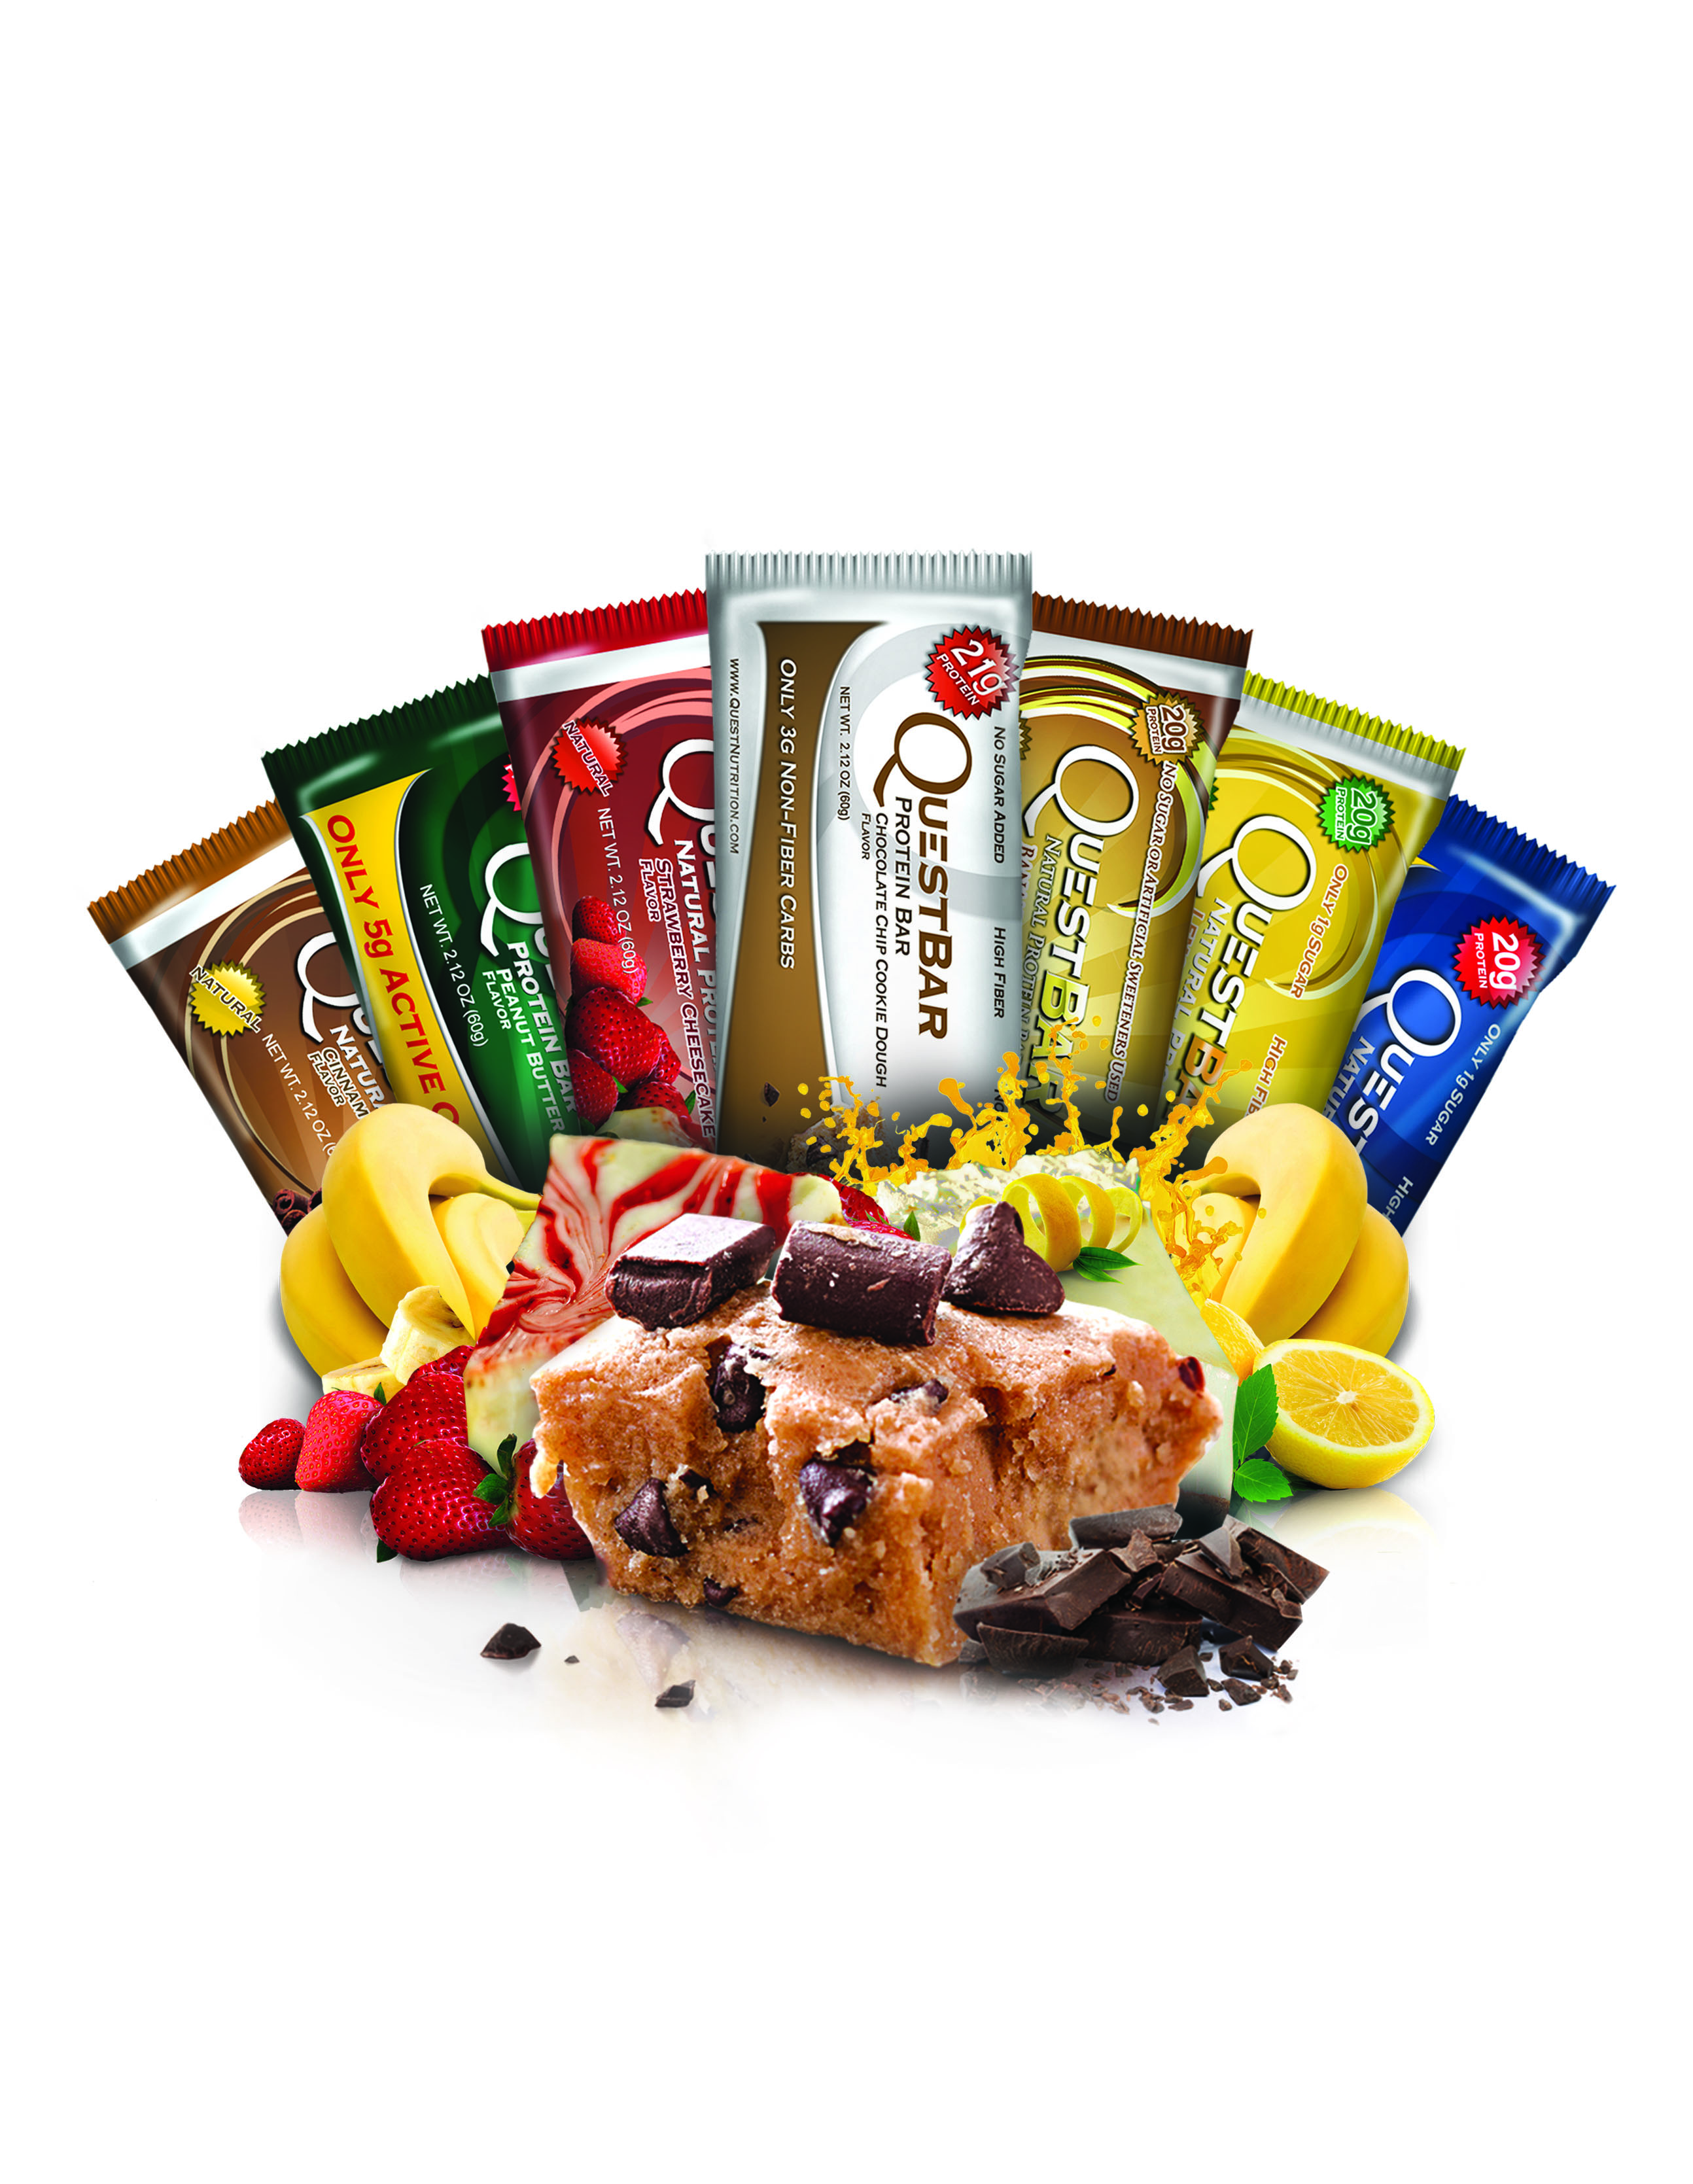 2 FREE Quest Nutrition Bars + SPA News